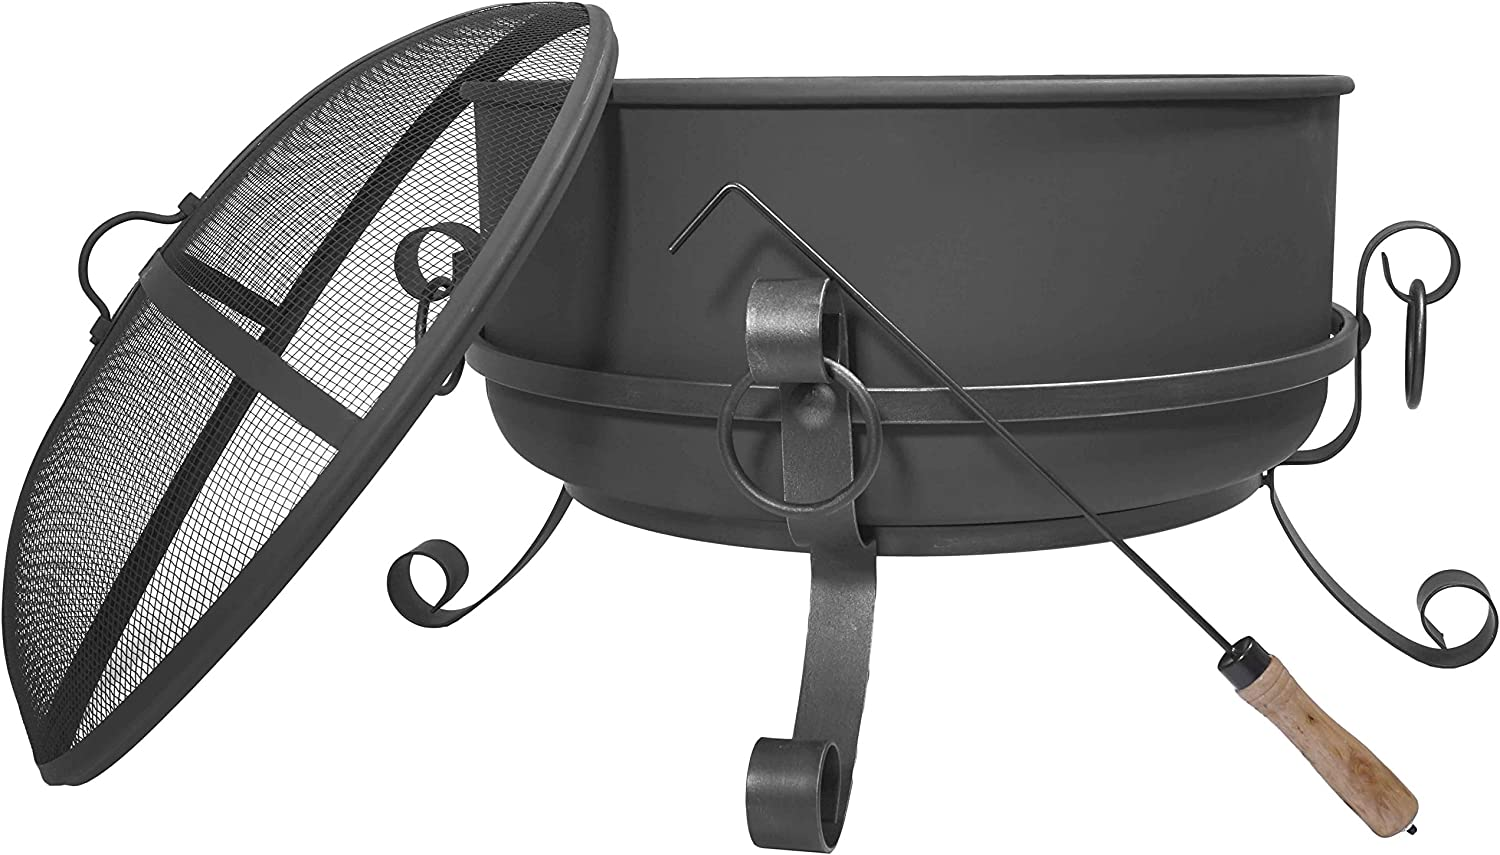 Titan 24 Inch Large Steel Cauldron Fire Pit with Spark Screen